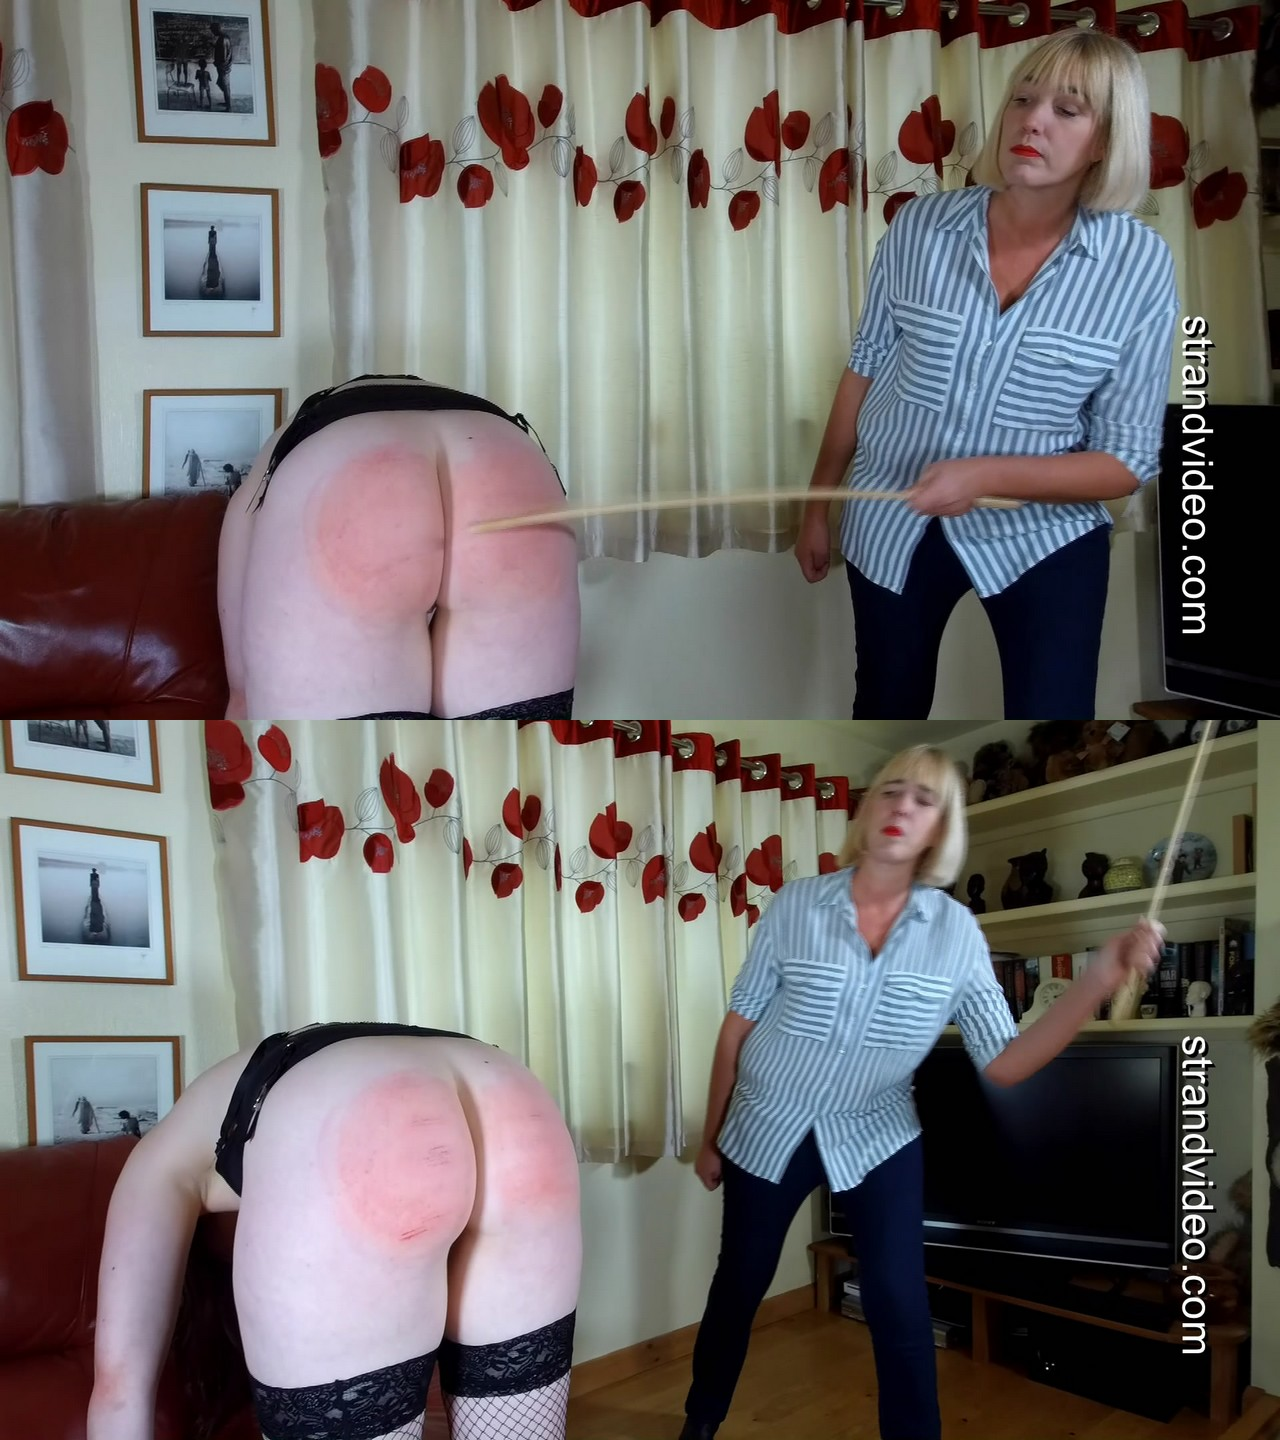 Spanking Sarah – MP4/Full HD – Alexa, Sarah Stern – Bend over